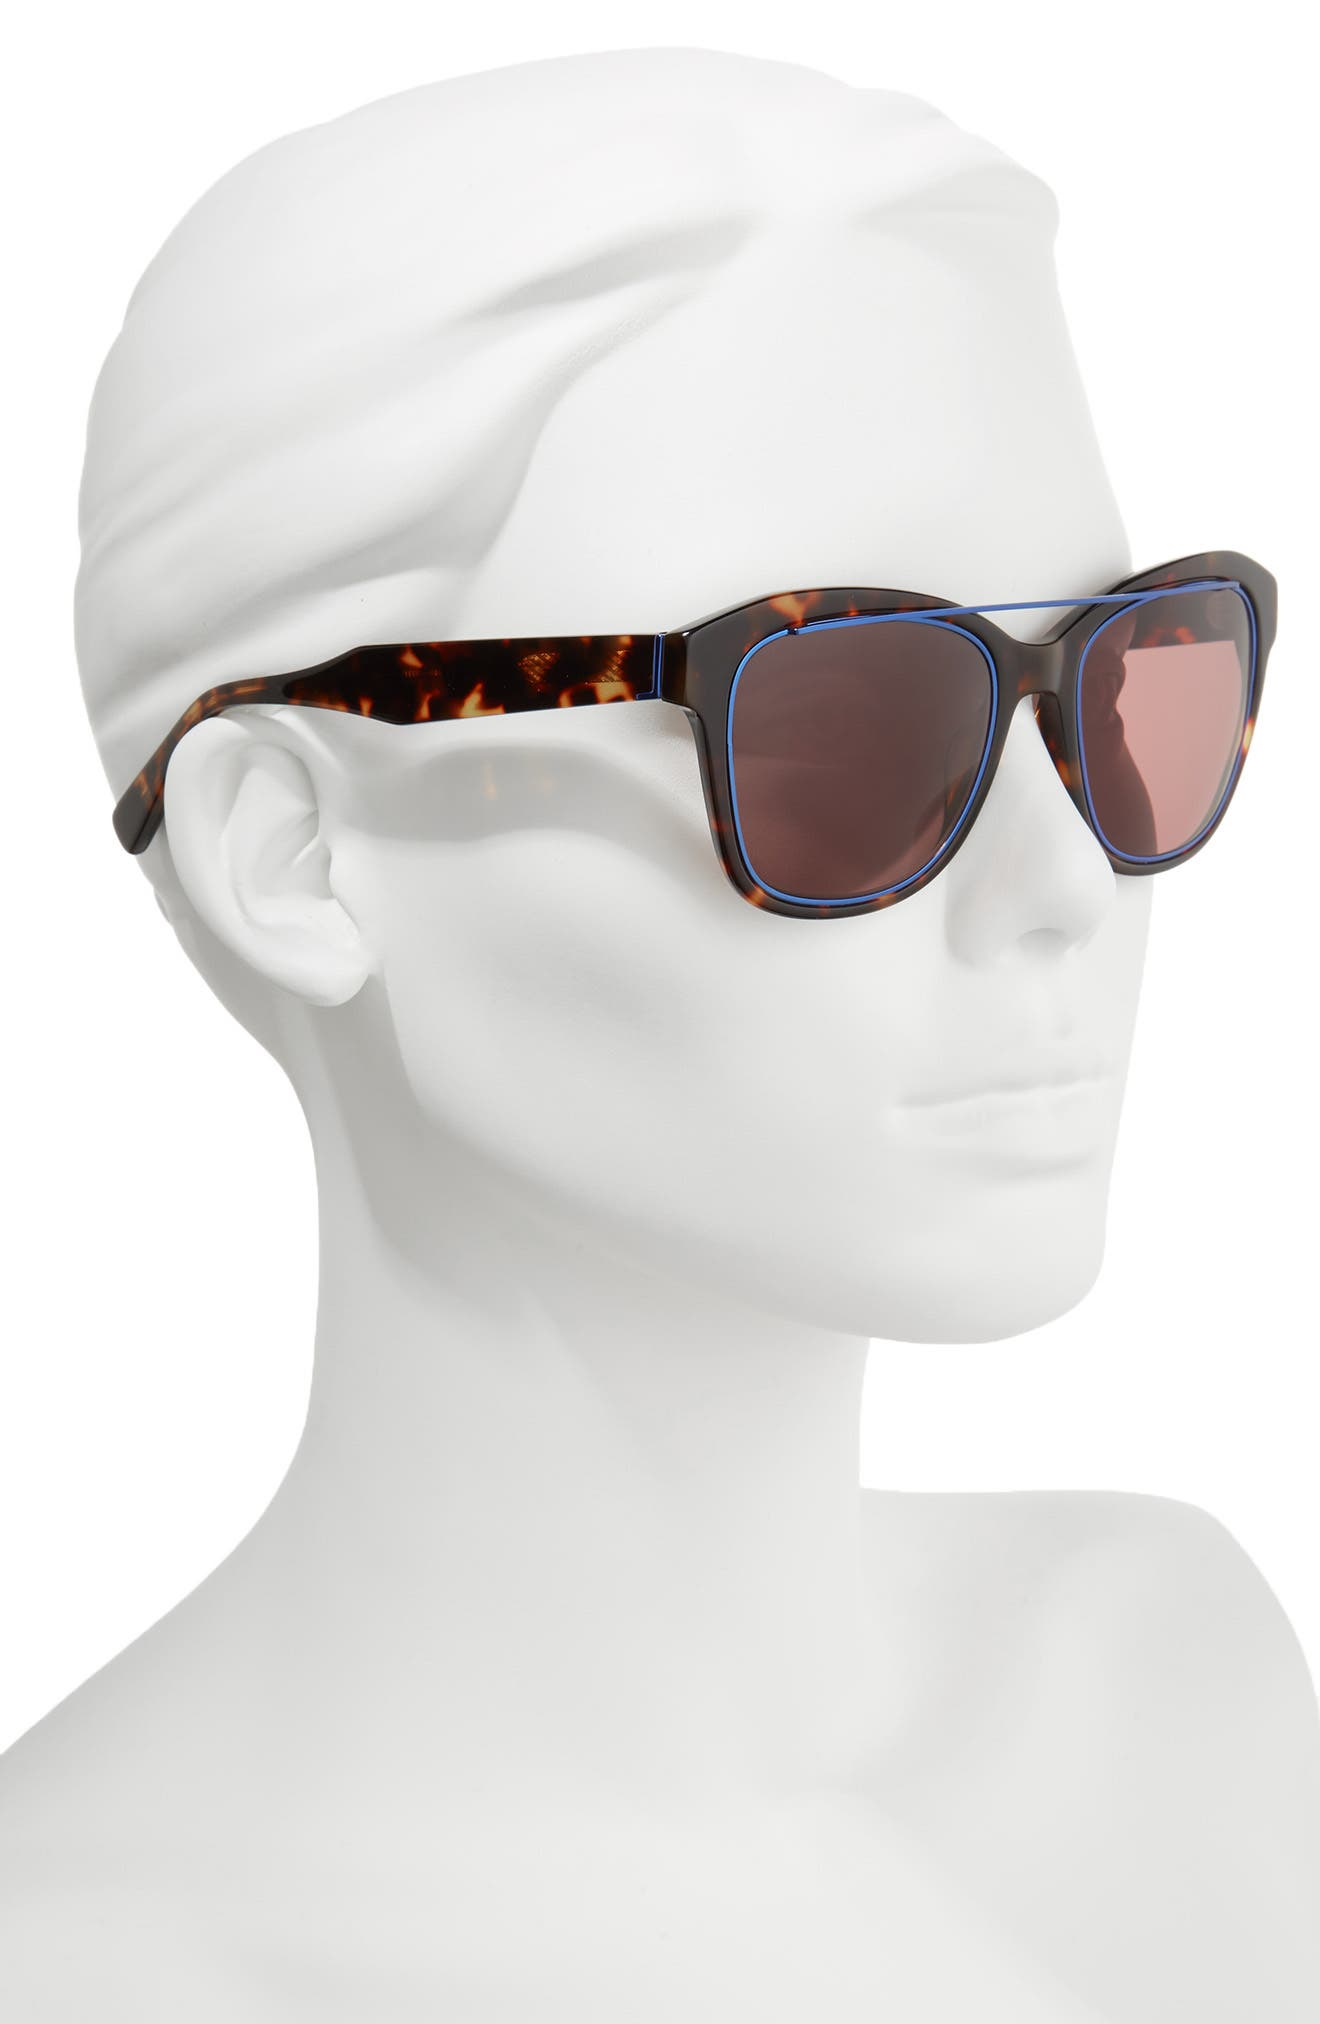 Hudson 52mm Gradient Sunglasses,                             Alternate thumbnail 2, color,                             Havana Tortoise